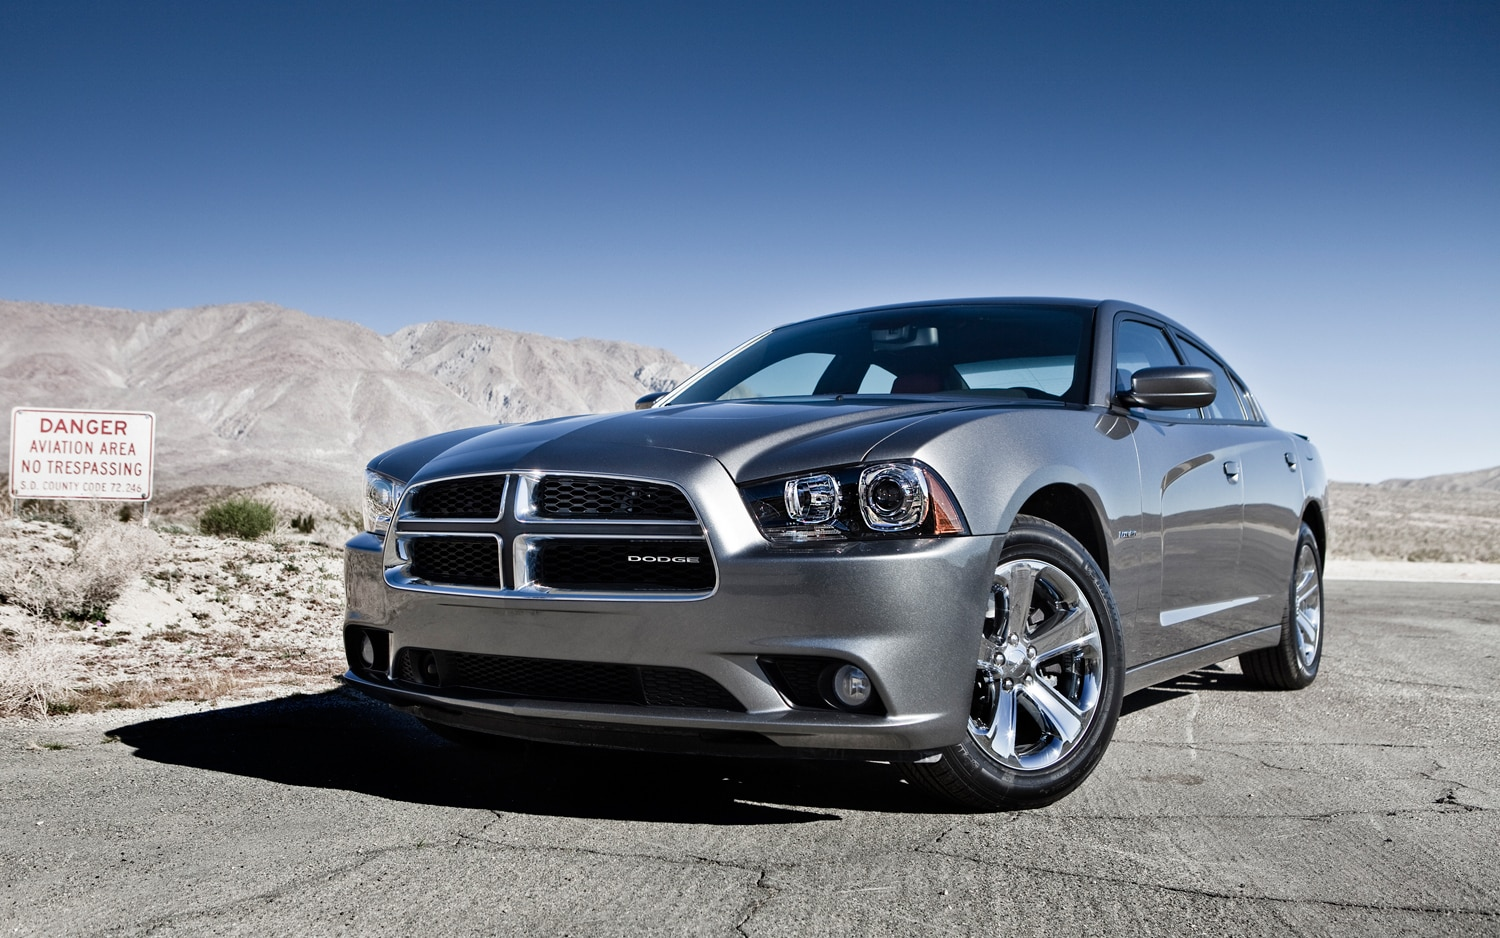 2012 Dodge Charger Front Three Quarter1